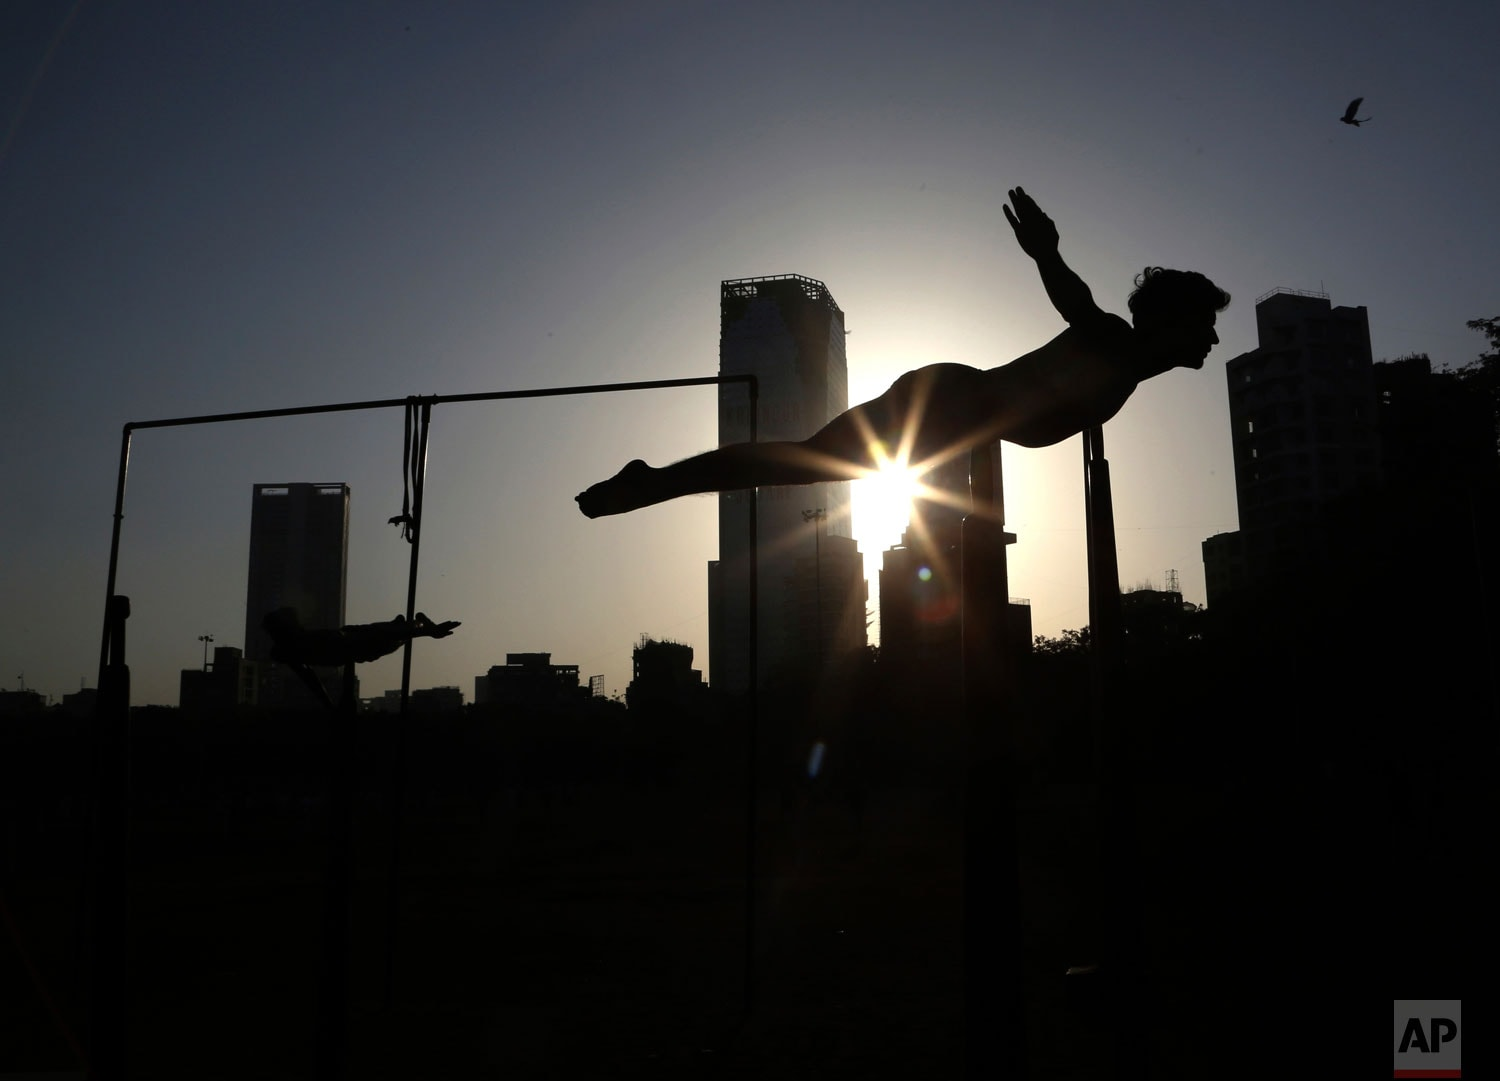 In this February 7, 2019, photo, a player performs on a Mallakhamb pole during an early morning training session at Shivaji Park in Mumbai, India. The word mallakhamb comes from malla, meaning wrestler, and khamb, or pole, and is a traditional training exercise for wrestlers in India. After centuries of being practised in isolation in the subcontinent, mallakhamb had its first international championship in Mumbai in February. (AP Photo/Rafiq Maqbool)